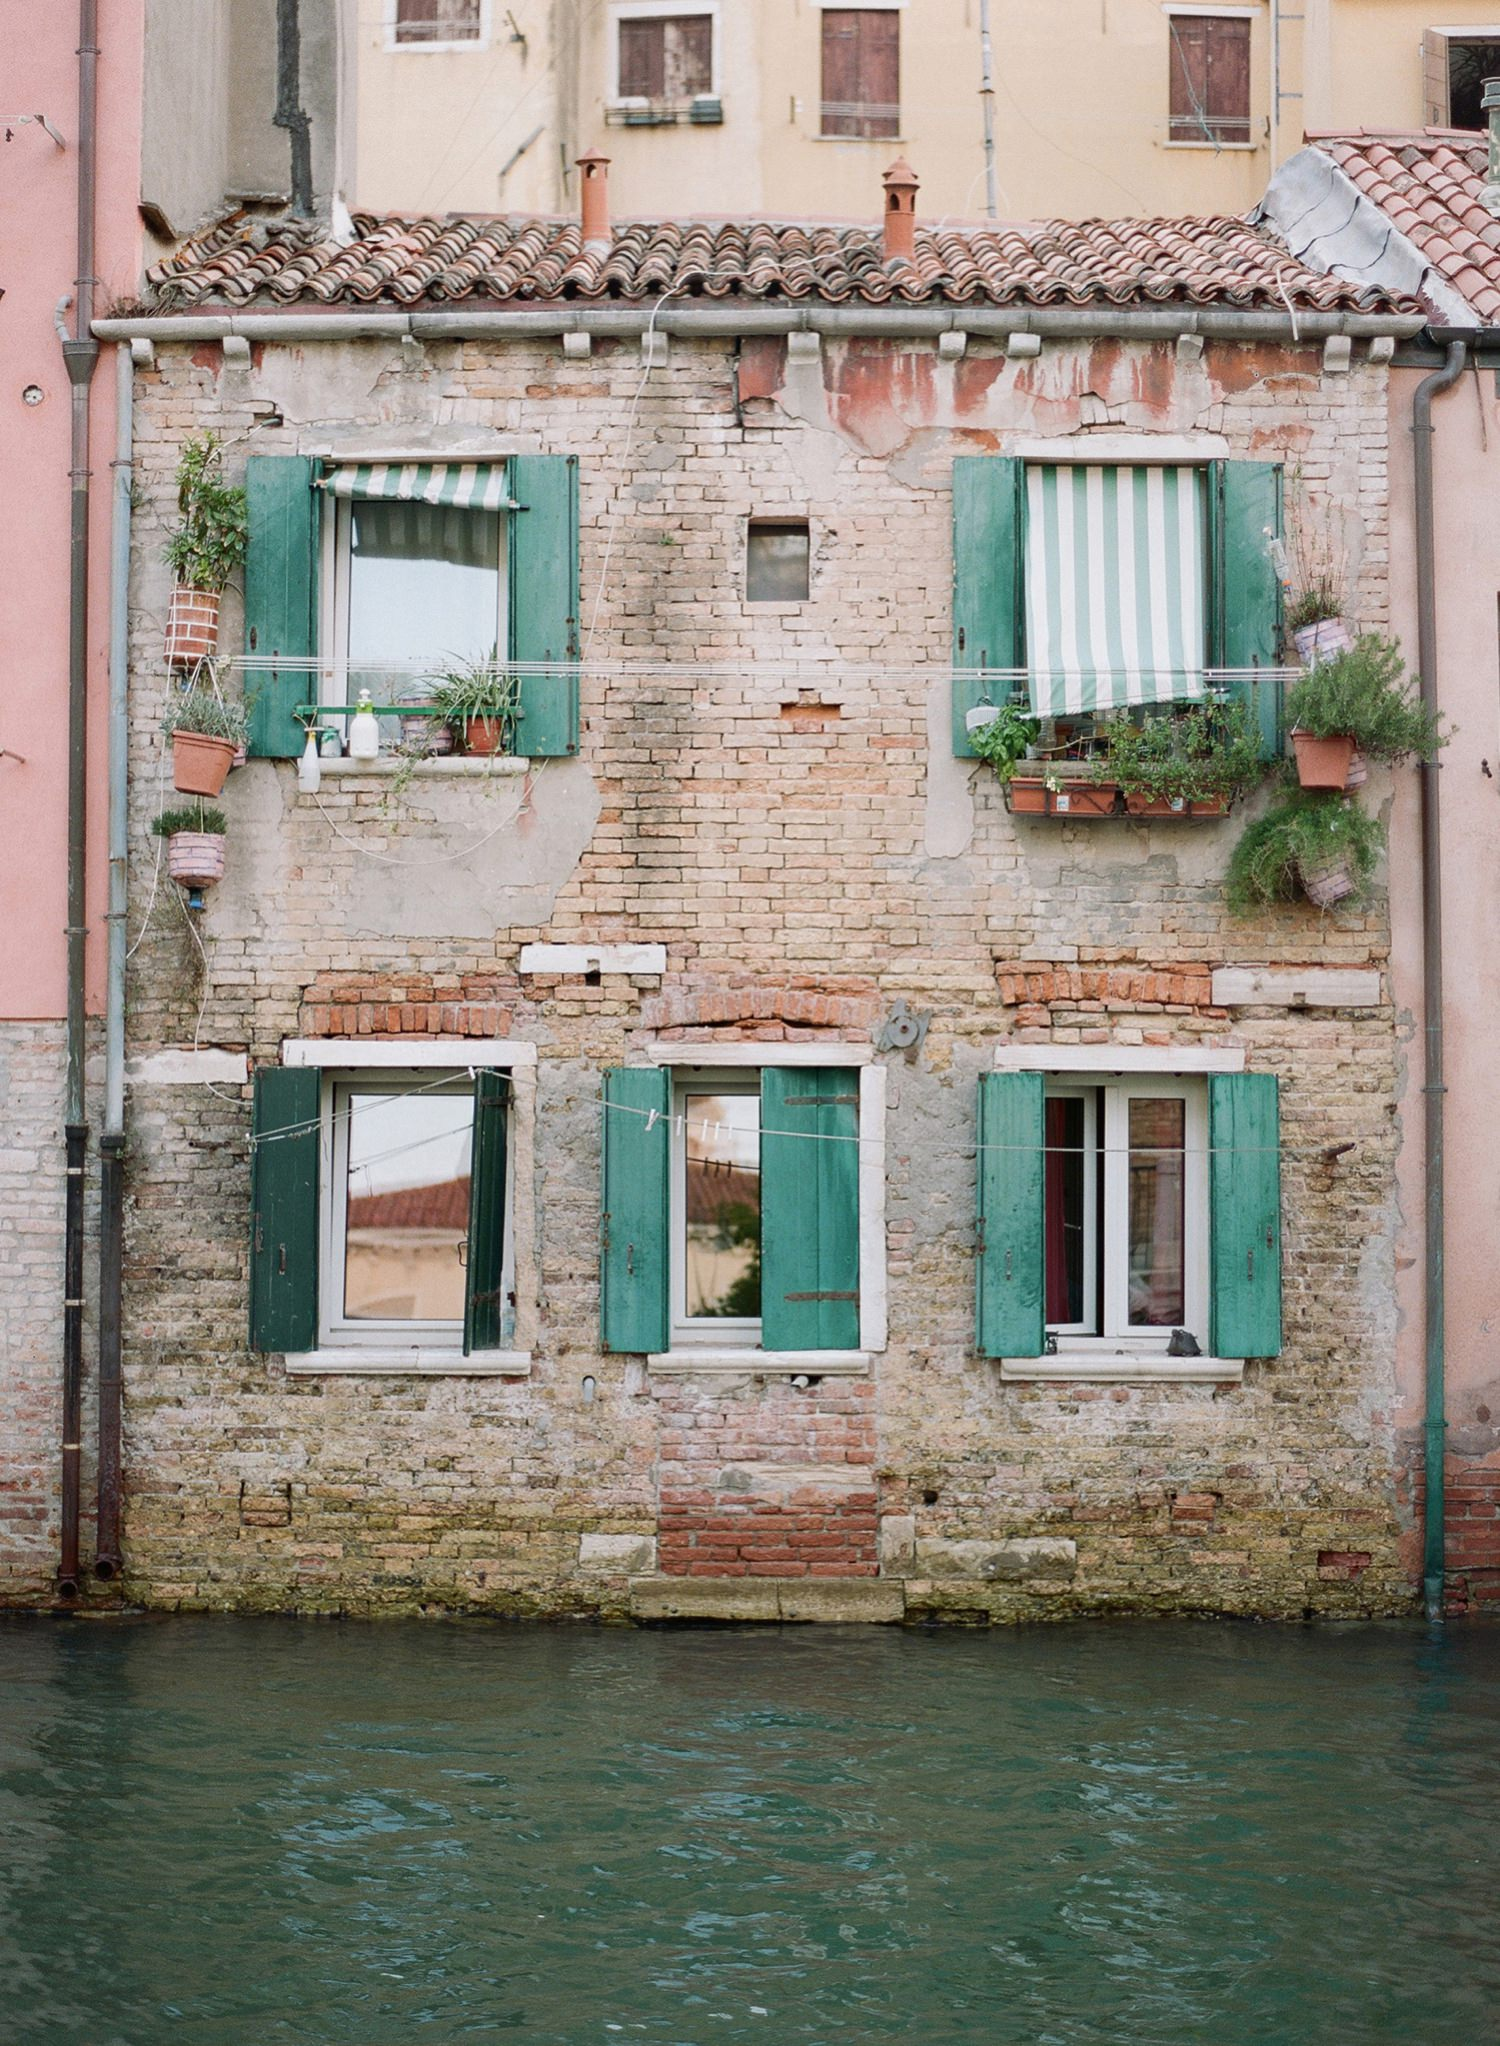 venice, italy travel photos